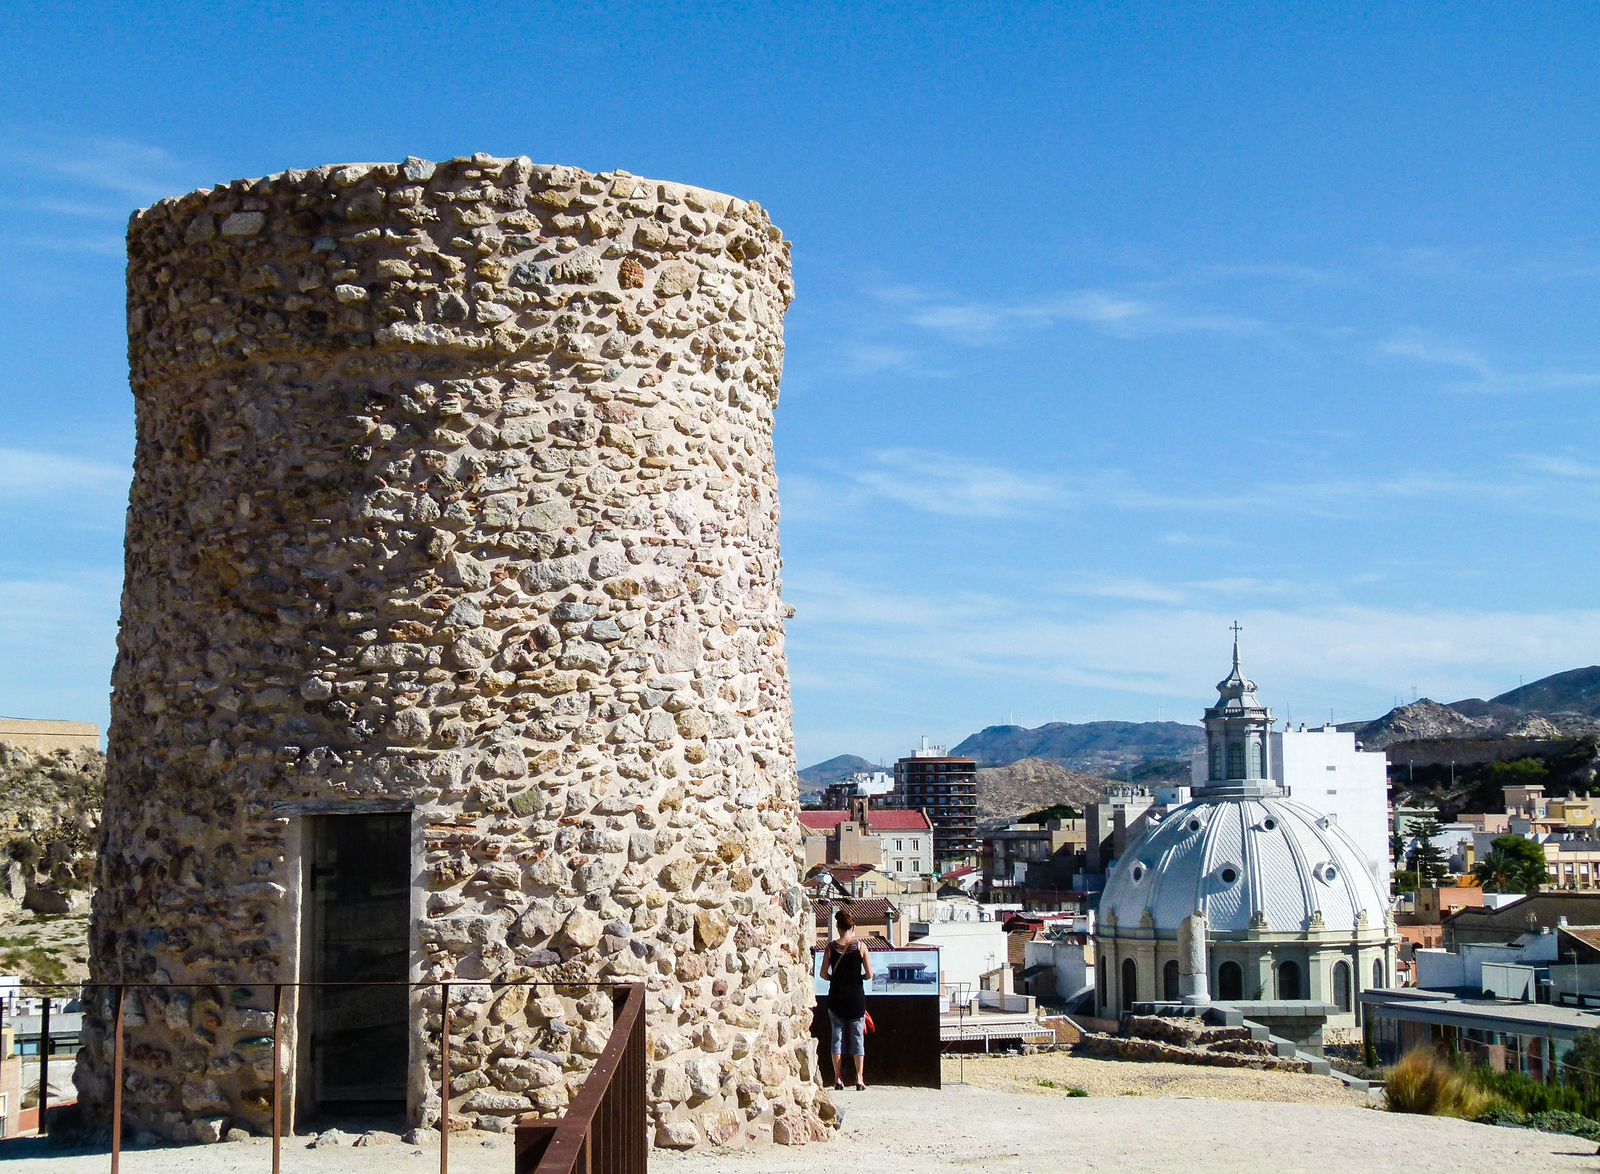 Stone tower overlooking the town of Cartagena, Spain.